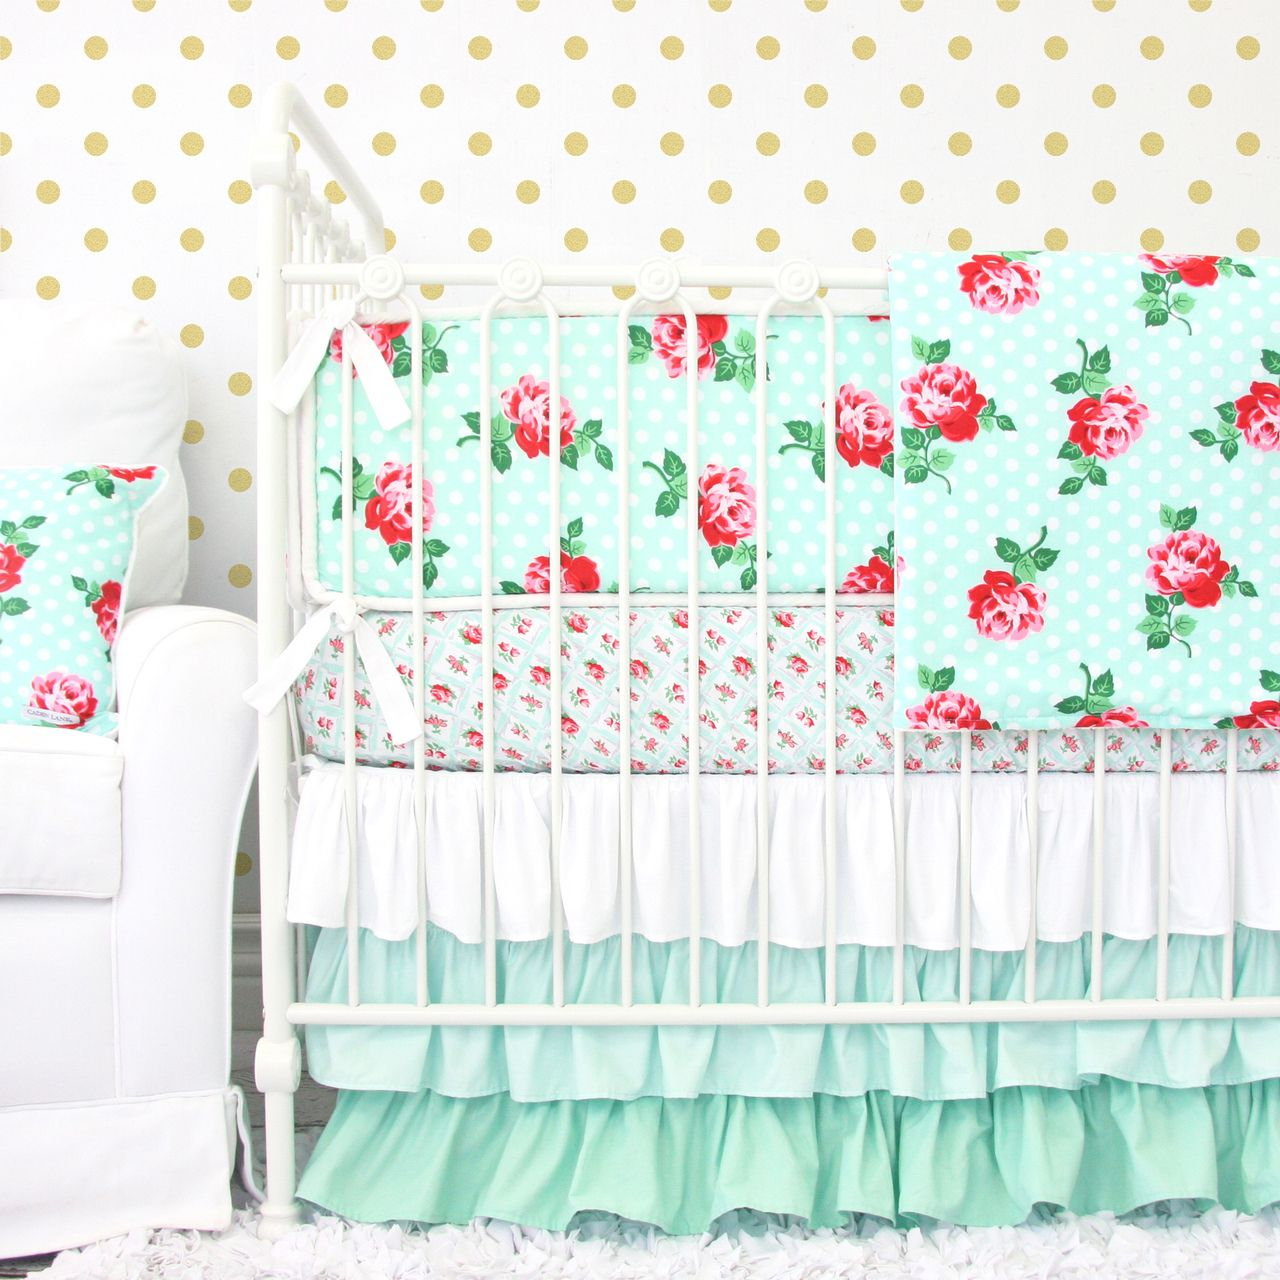 Mint and roses =vintage - Caden Lane's Lucy's Mint Rose is perfect inspiration for a vintage nursery design!